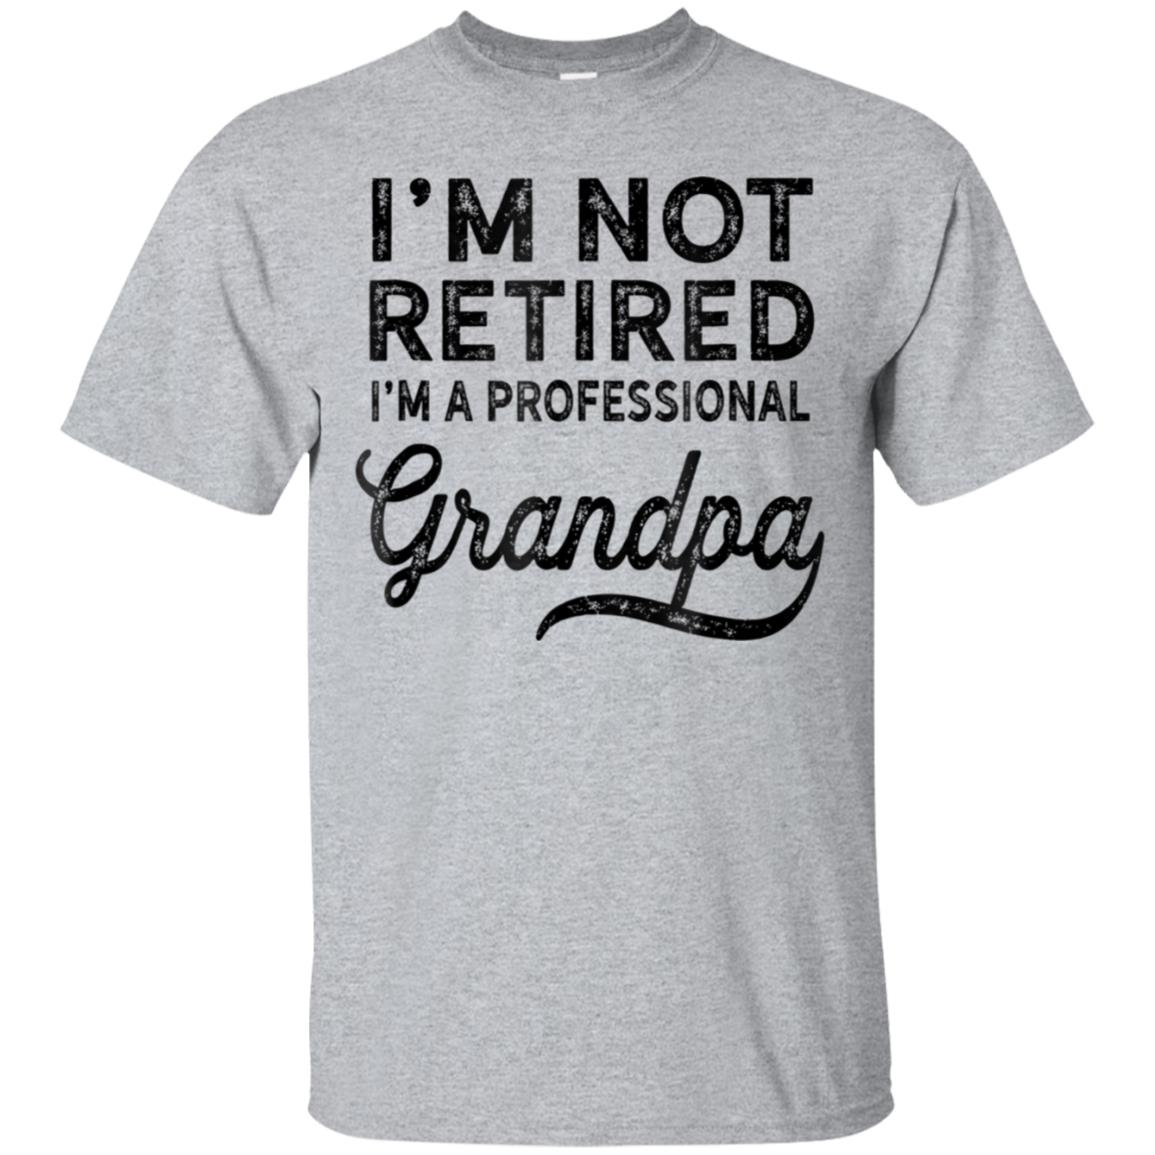 I'm Not Retired A Professional Grandpa Shirt Father Day Gift 99promocode